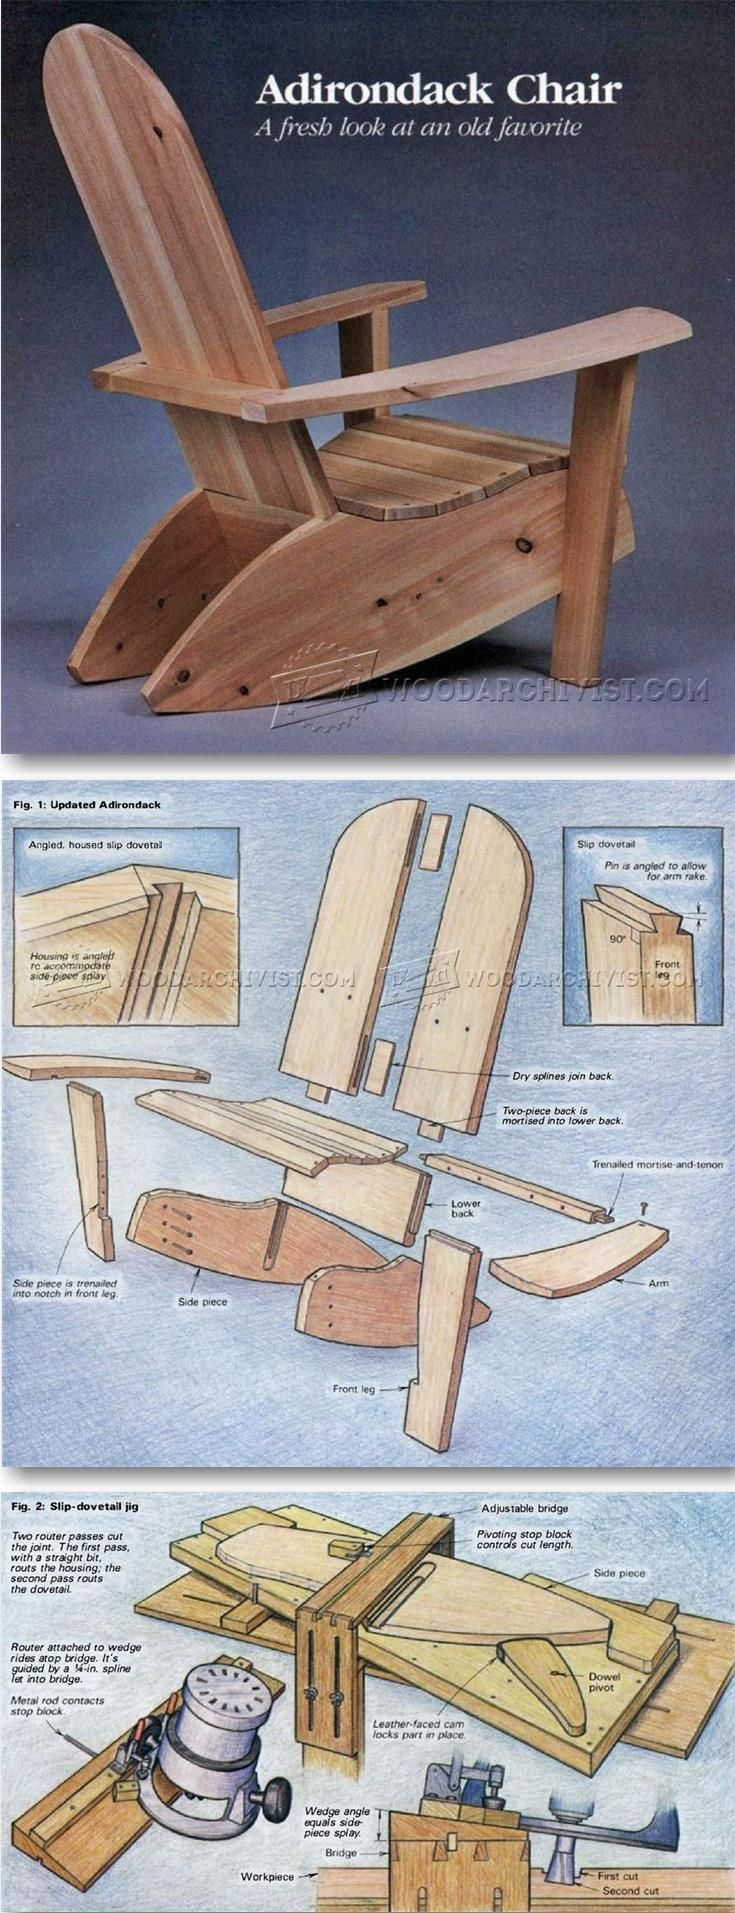 Pin By Morningchores On Woodworking Outdoor Furniture